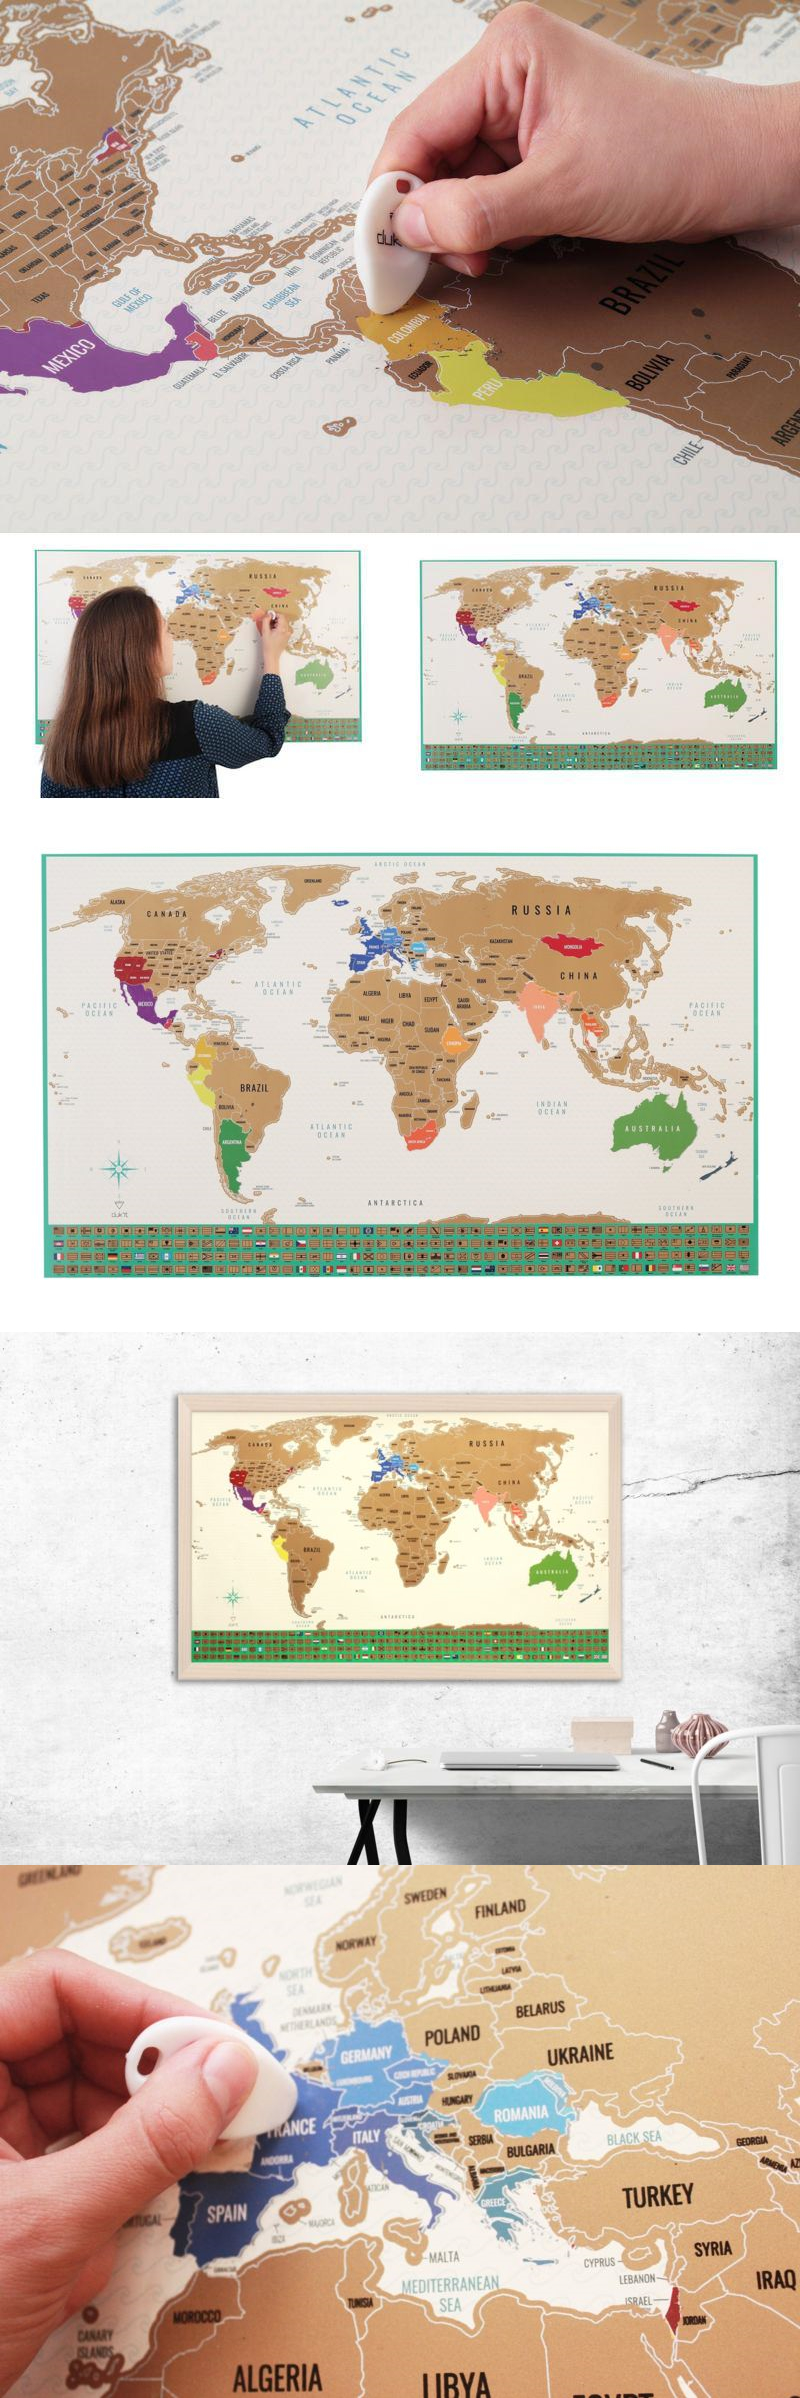 Other travel maps 164807 world travel tracker map scratch off other travel maps 164807 world travel tracker map scratch off world map country flags us gumiabroncs Image collections